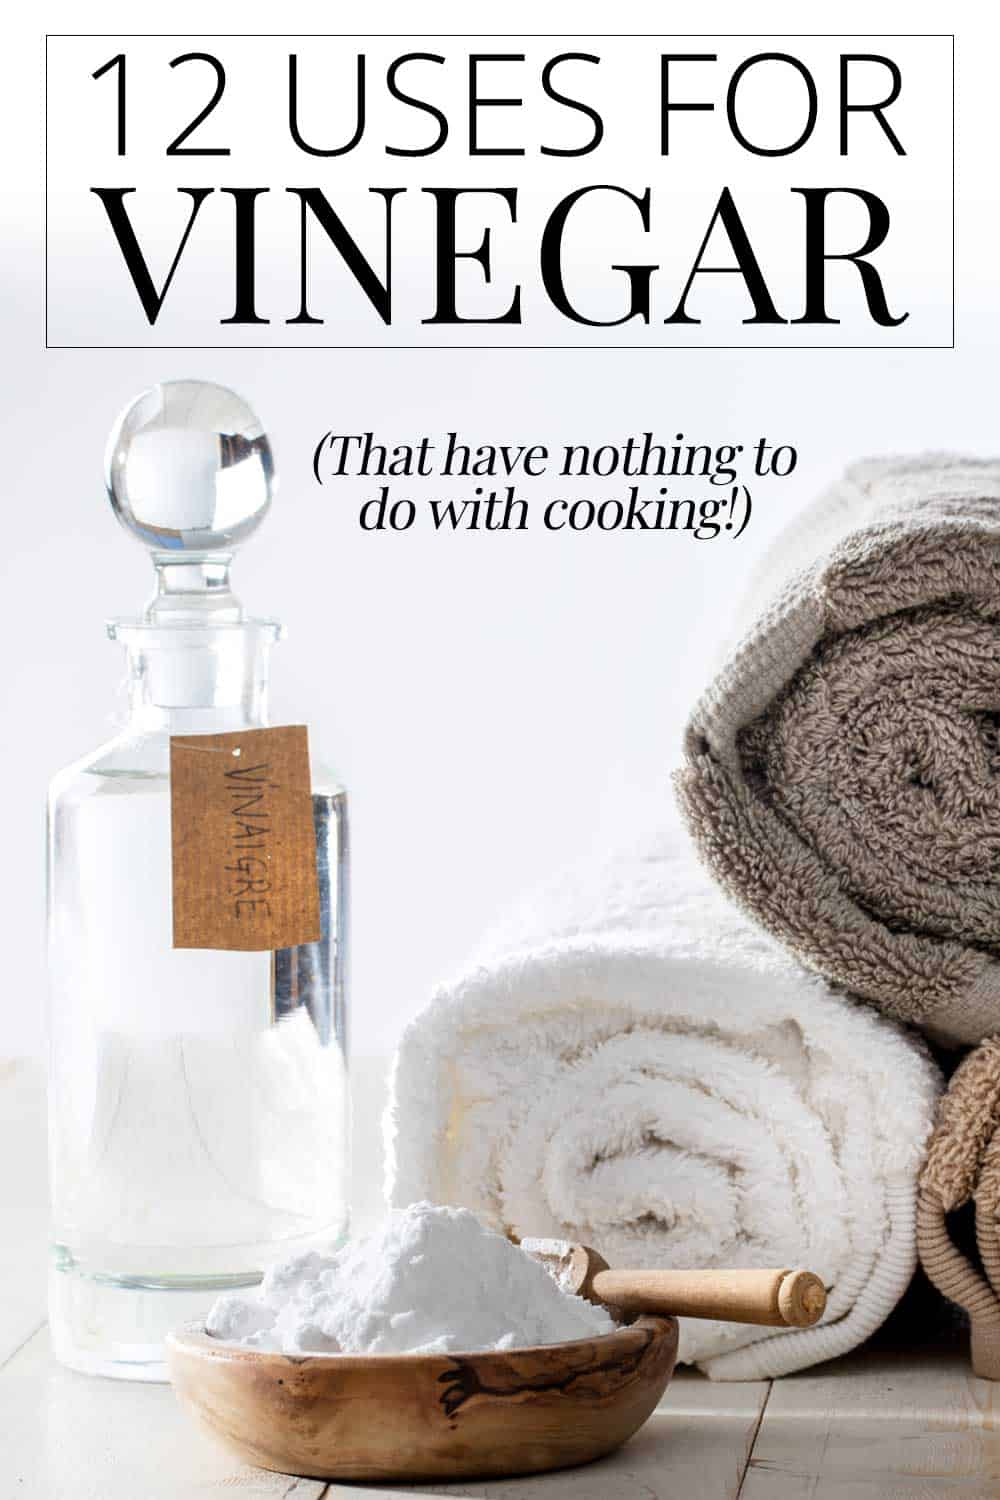 vinegar, baking soda, towels